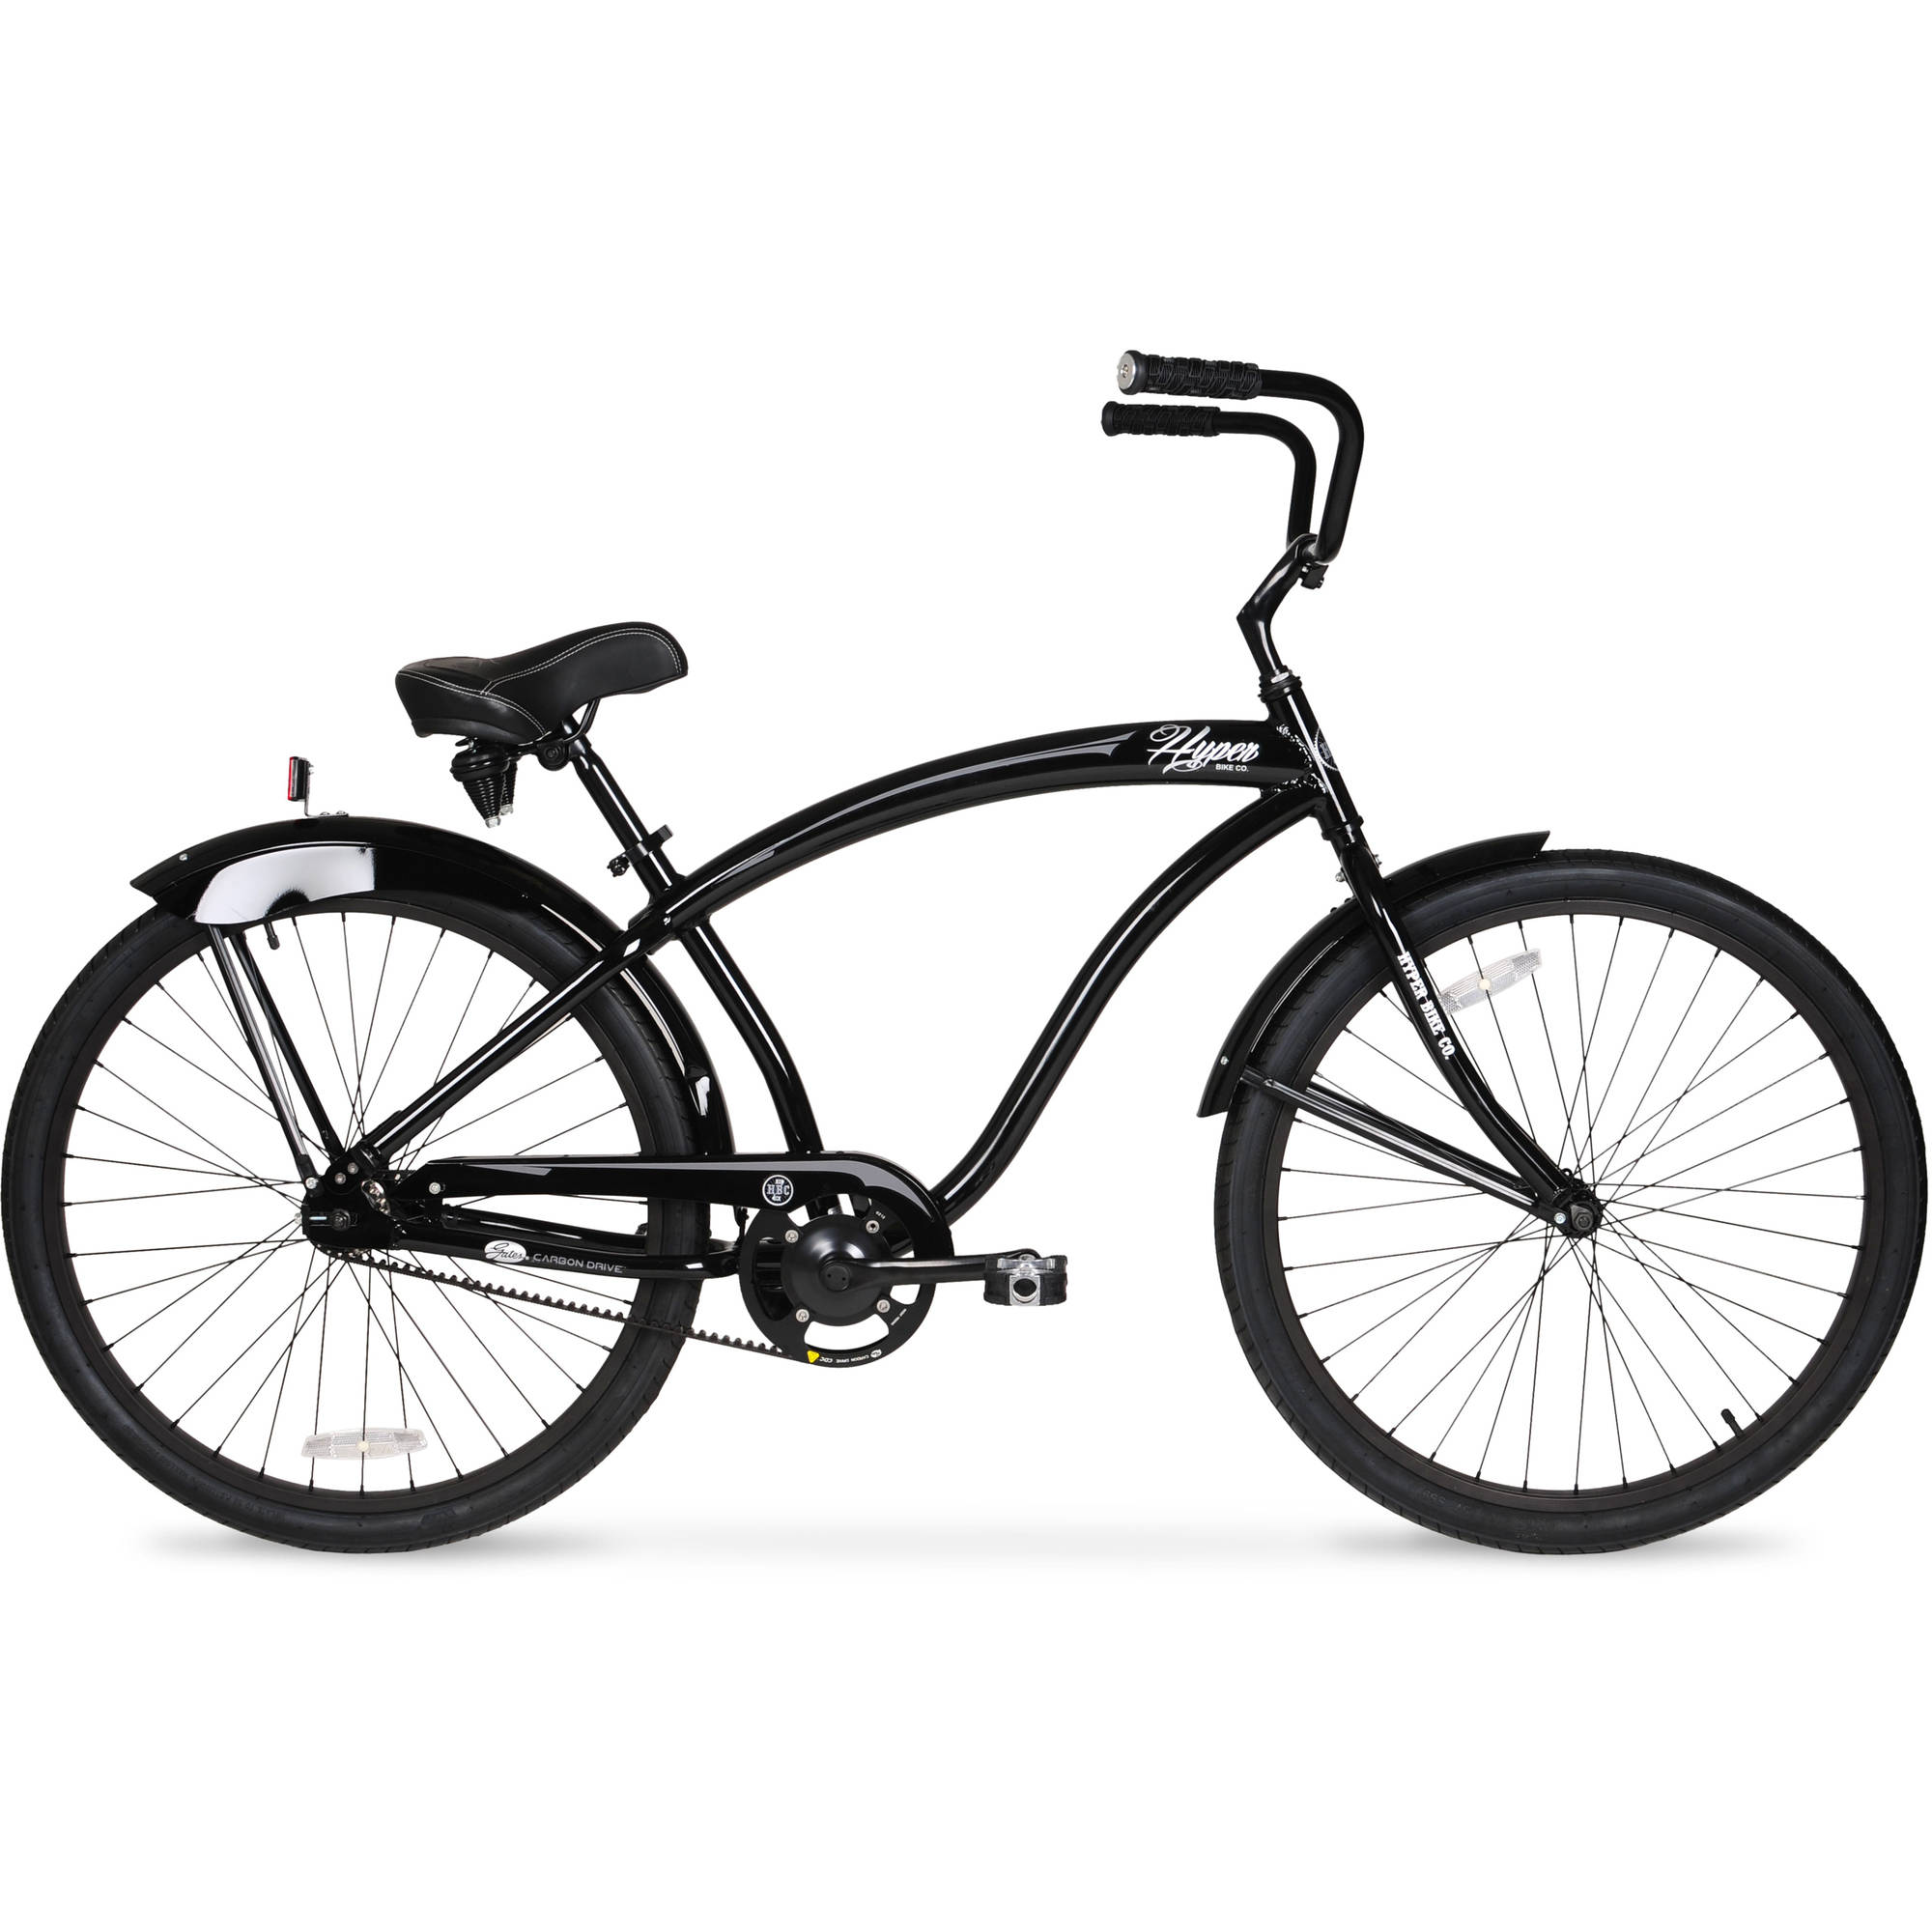 "26"" Men's Hyper HBC Belt Drive Bike, Gloss Black"